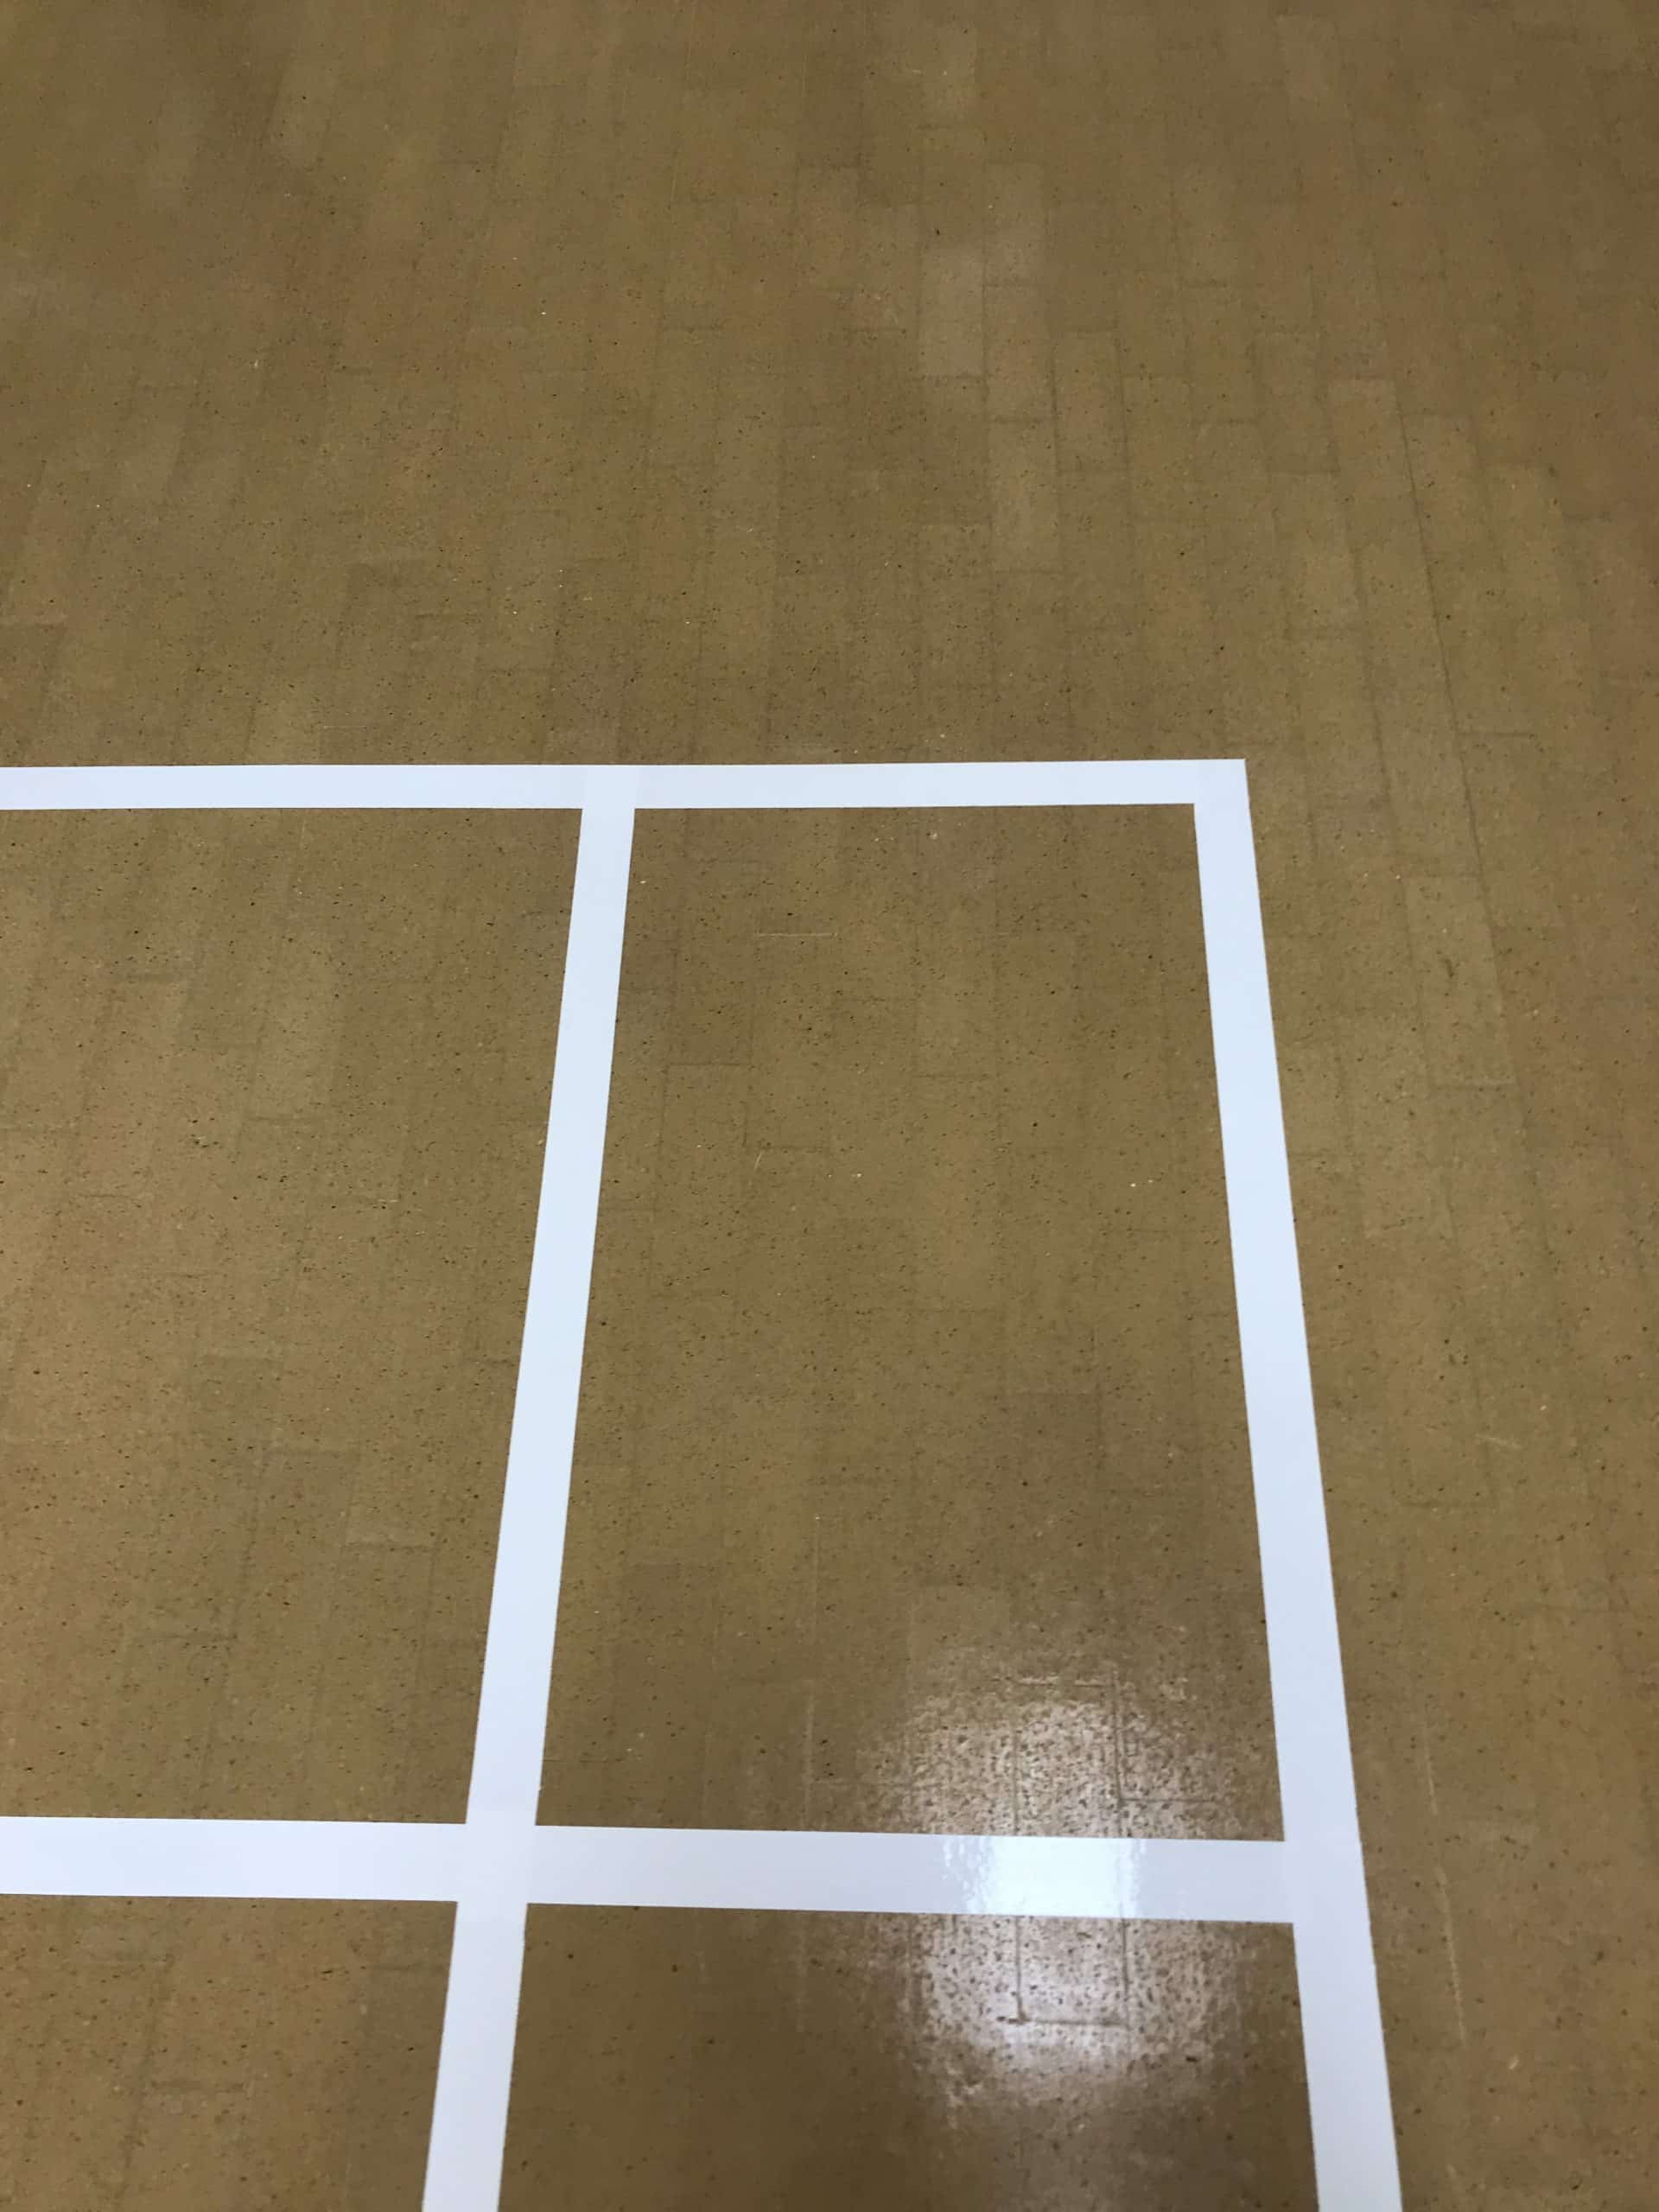 sports-hall-restoration-court-markings00003